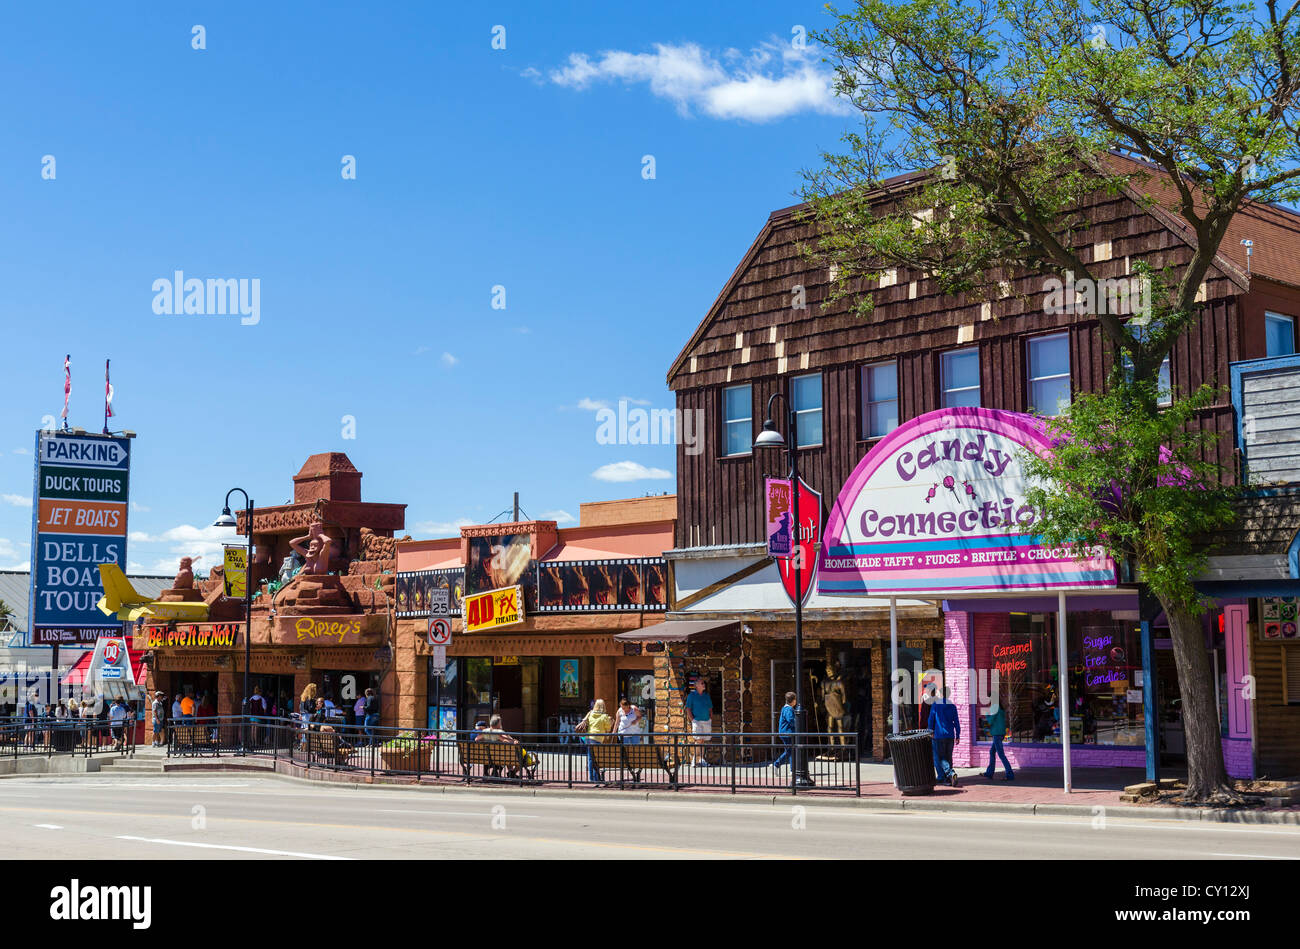 Shops And Attractions On Broadway Main Street In The Popular Resort Stock Photo Alamy